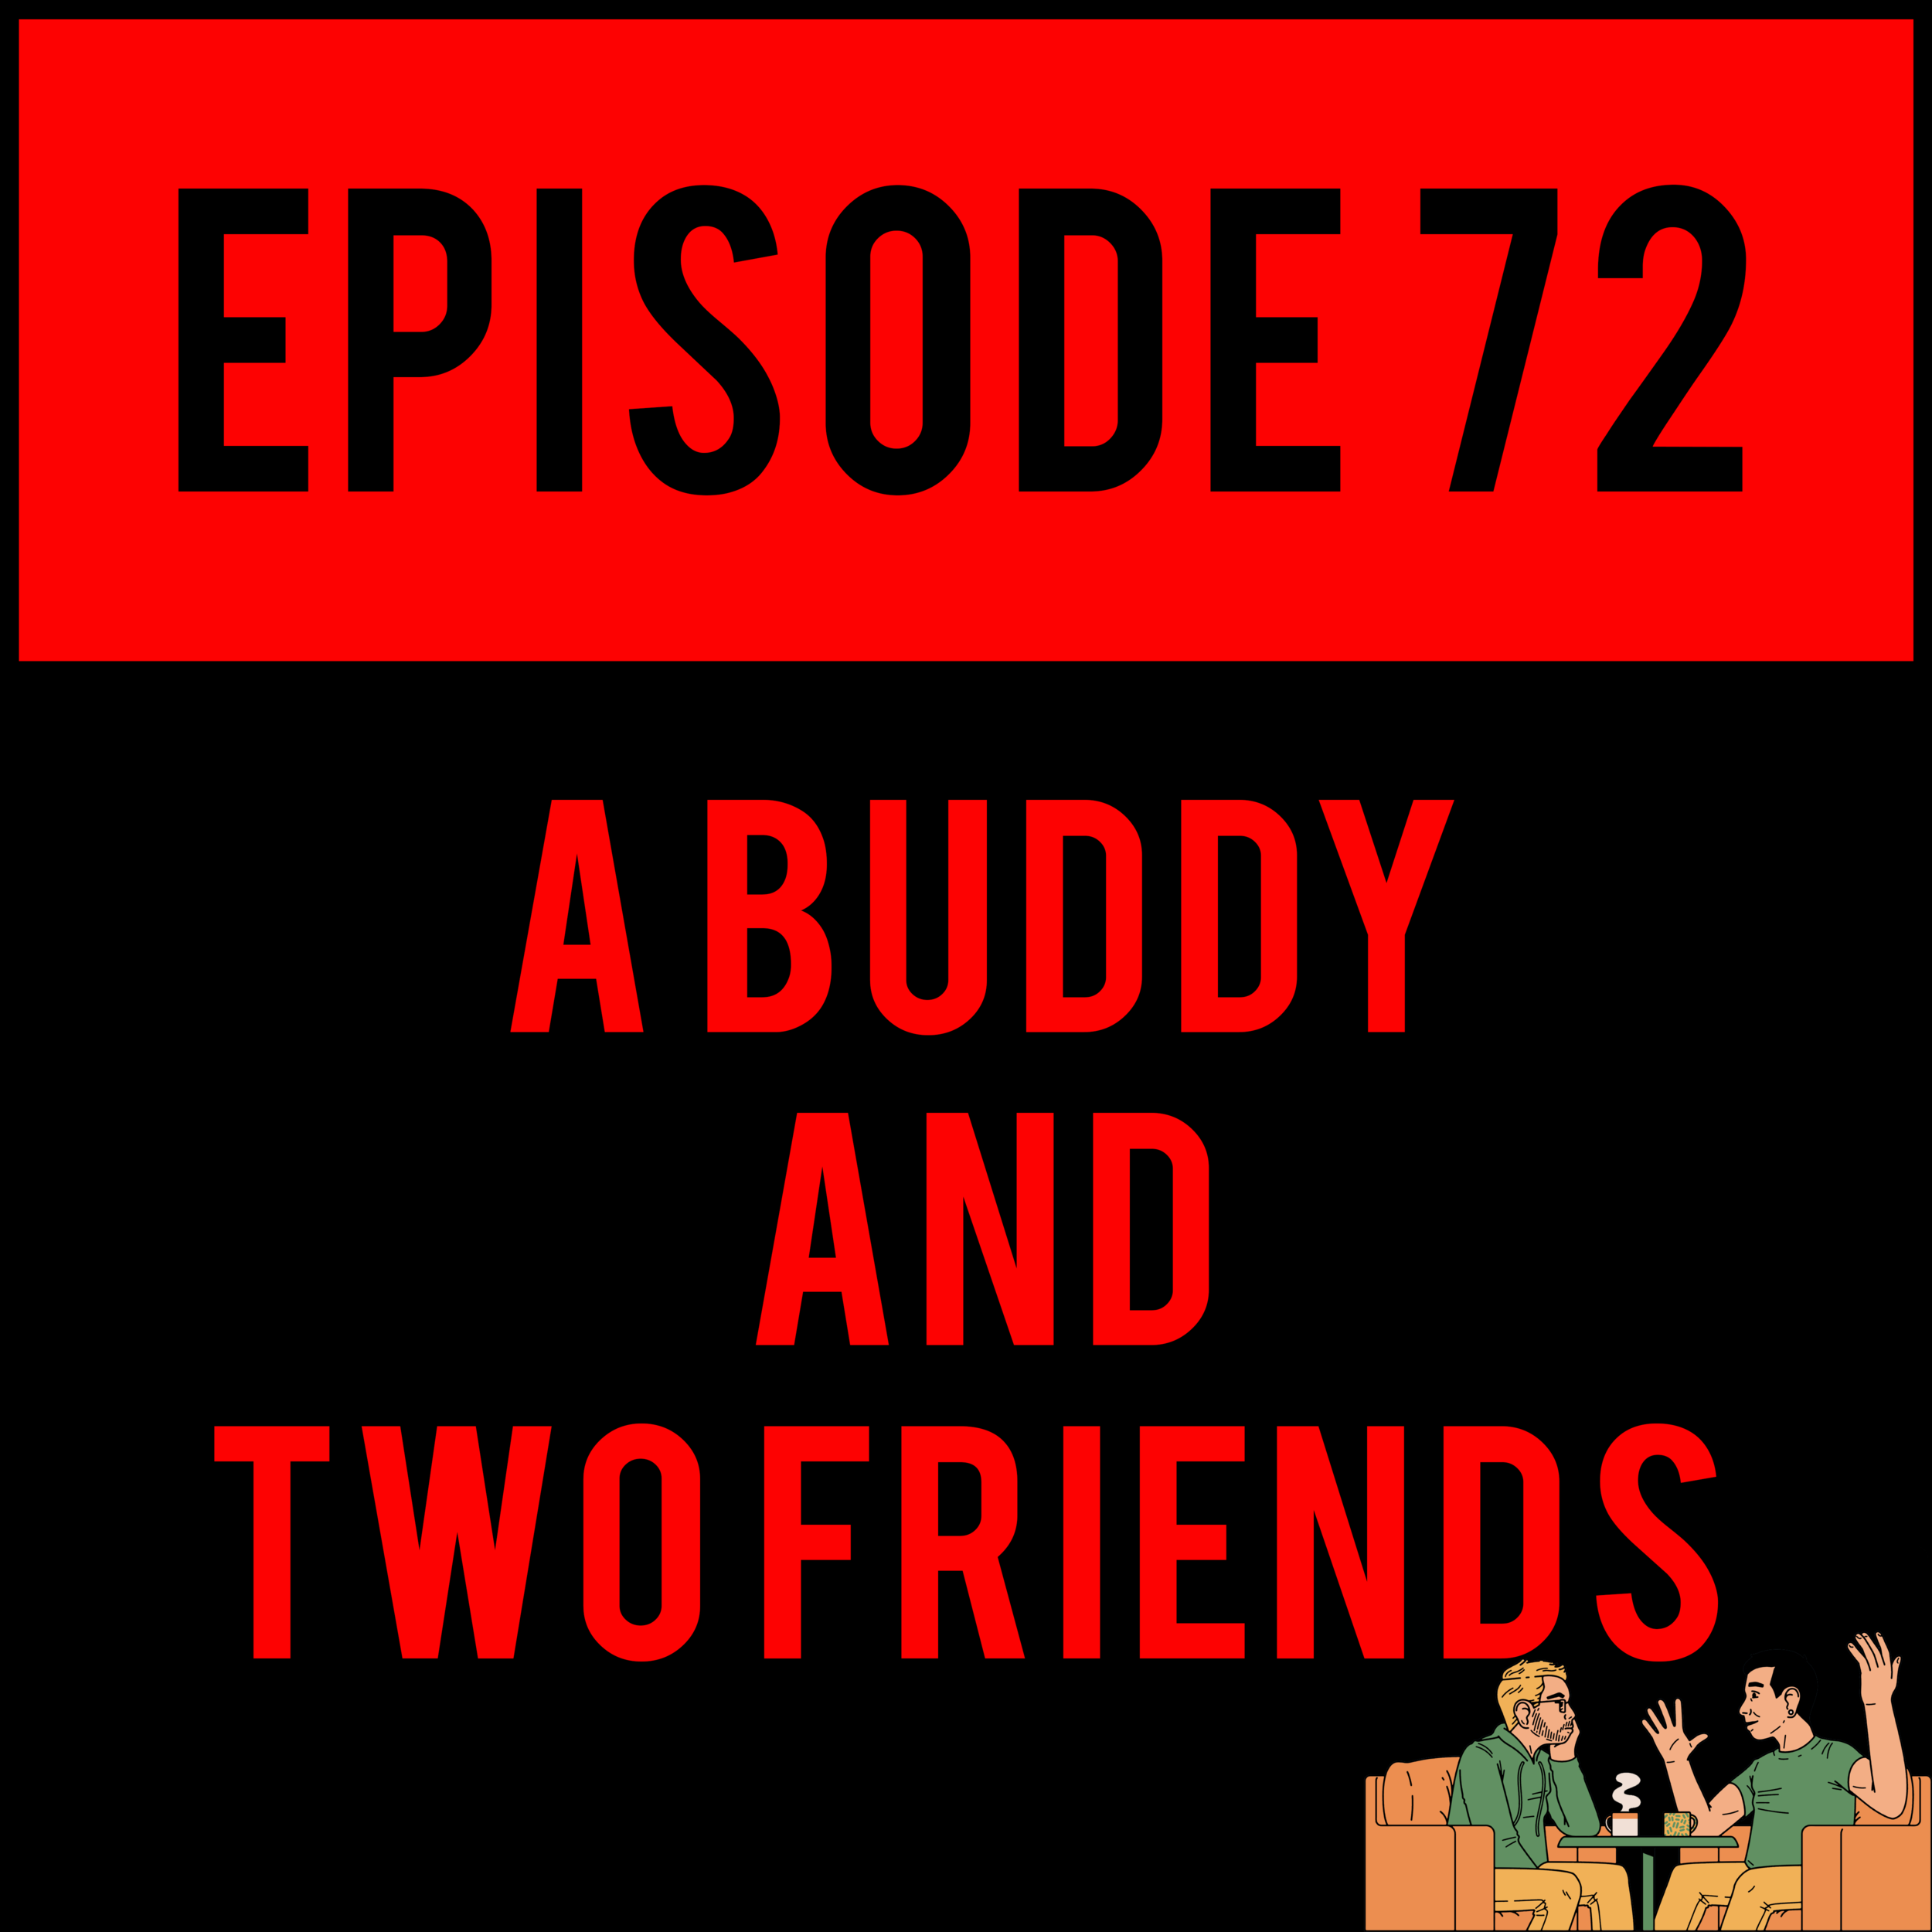 "EPISODE 72 - Alex Greys you up, Danny practically buys a Tesla, Robbie DOESN'T talk about Marvel and Justyn makes you go ""hmmm"". A BUDDY AND TWO FRIENDS - EPISODE 72 was basically a porno."